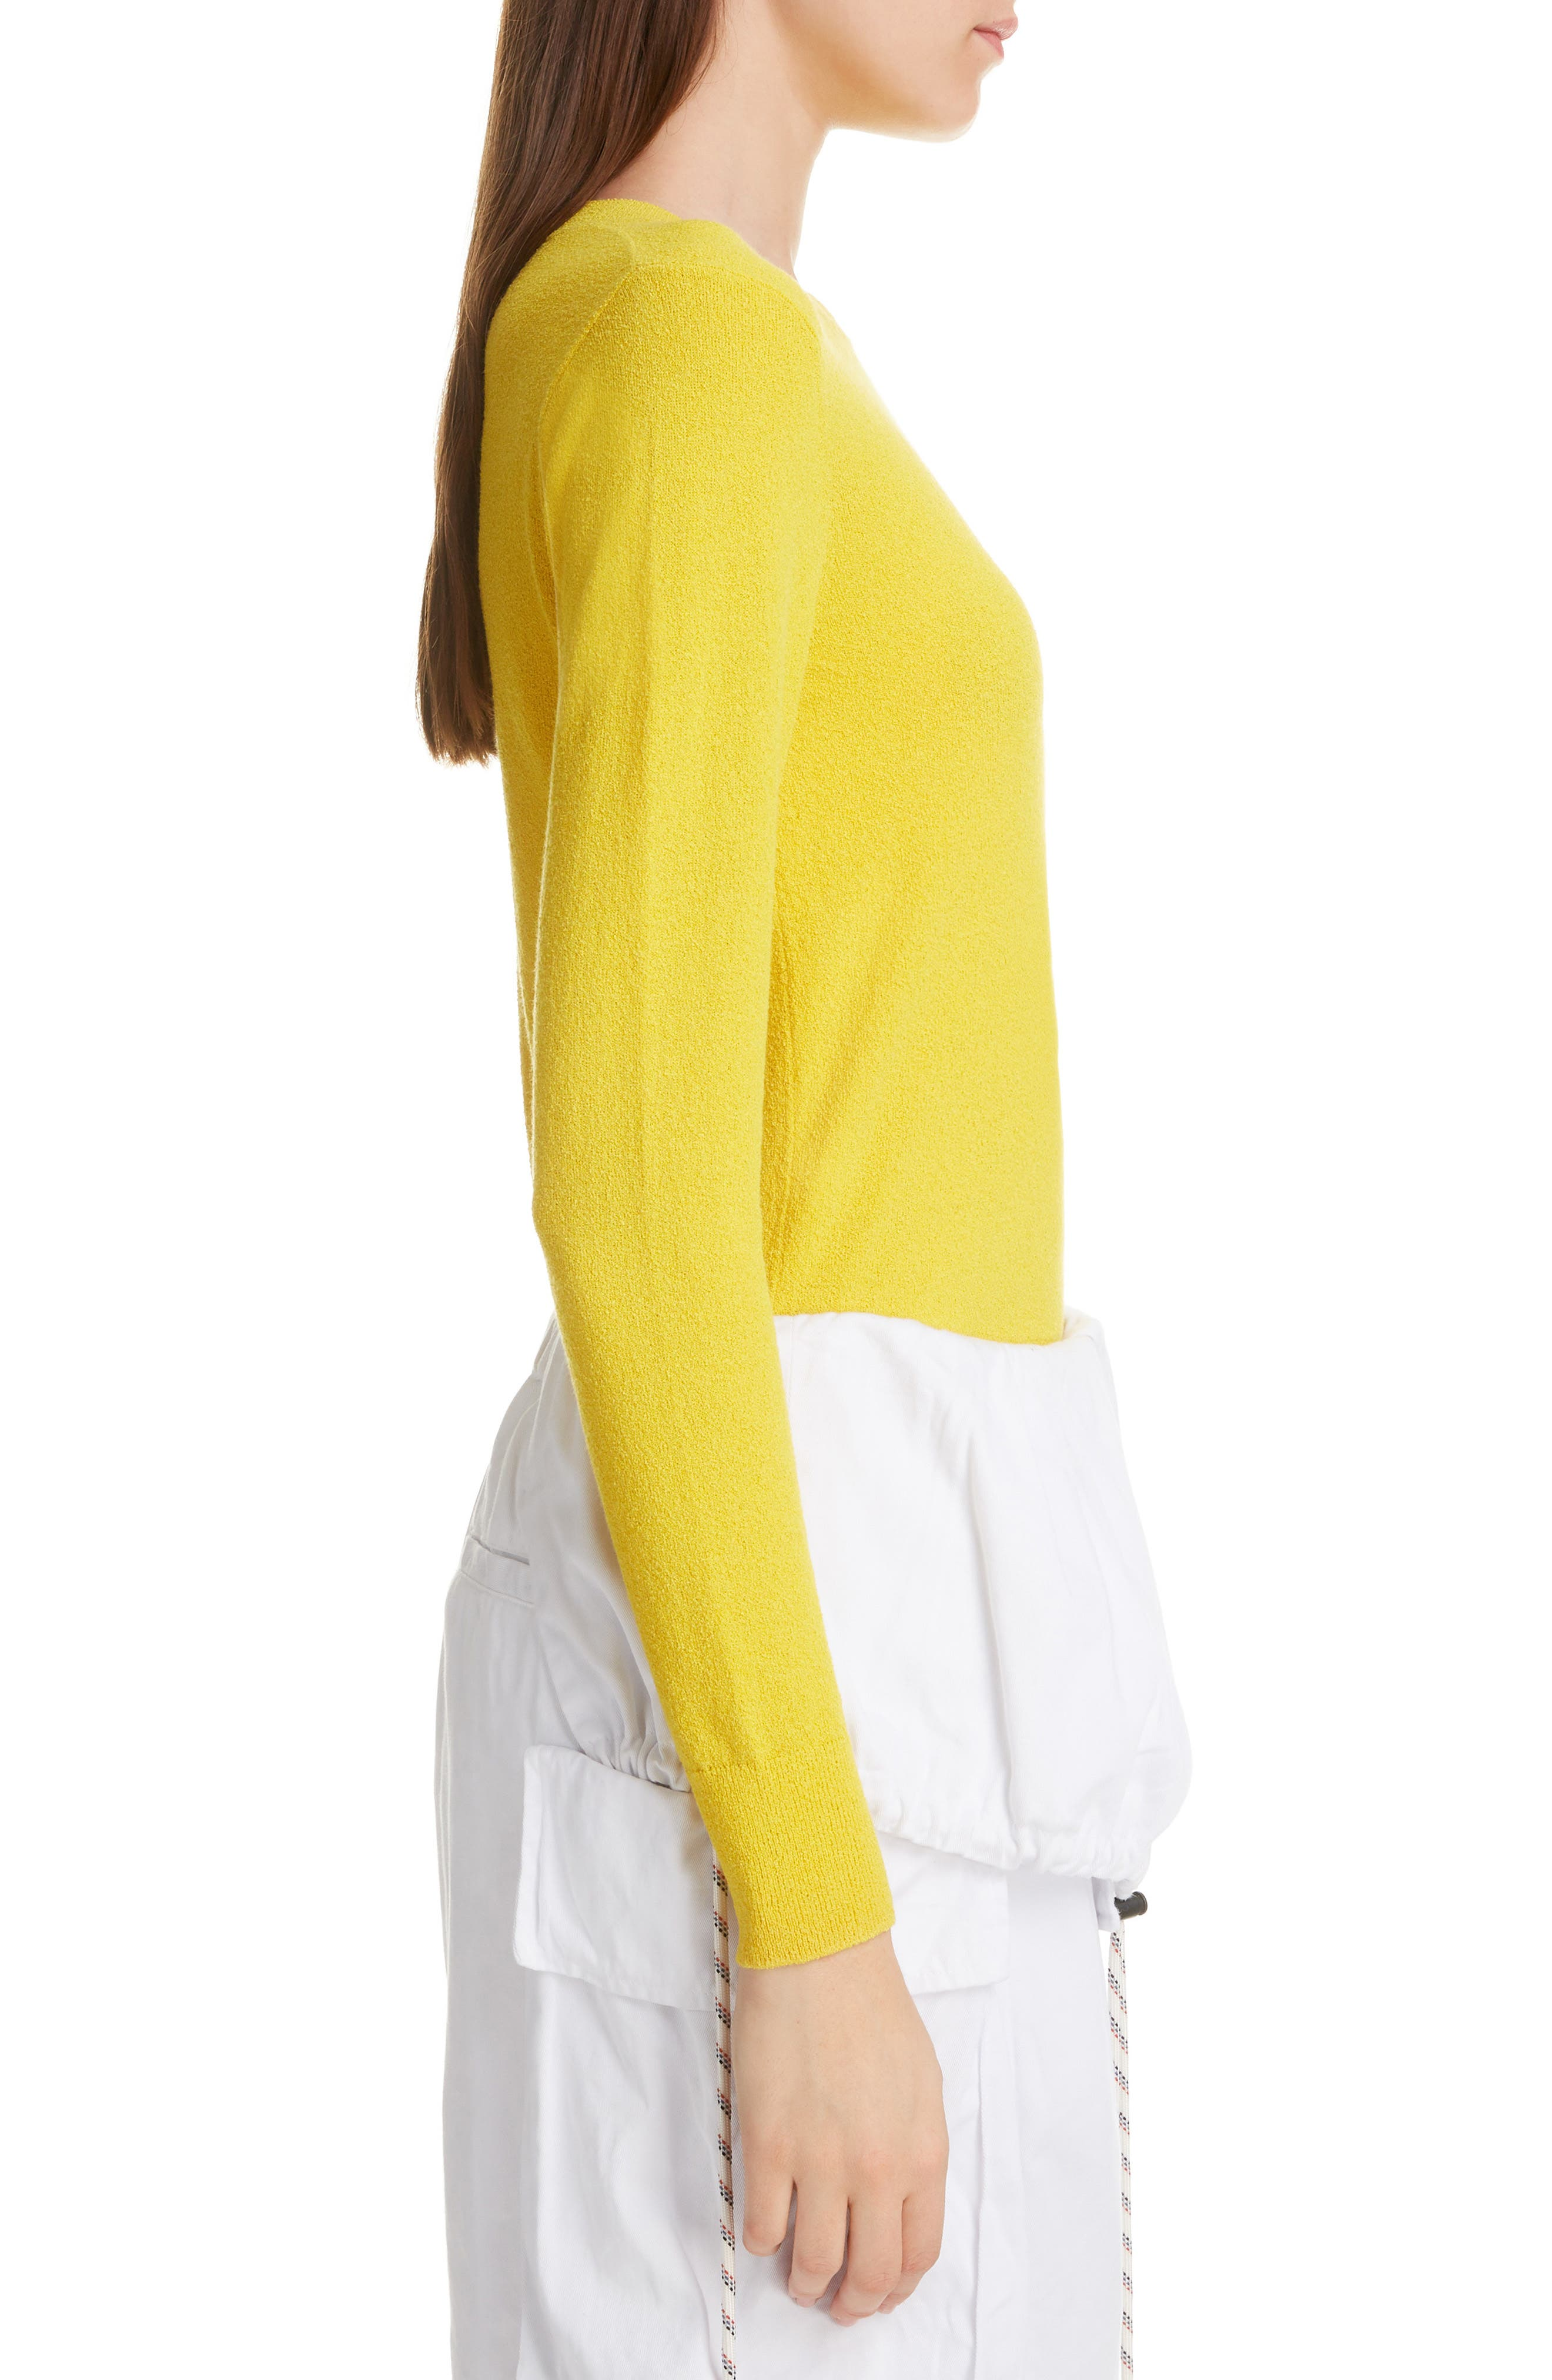 DRIES VAN NOTEN, Nadine Sweater, Alternate thumbnail 3, color, YELLOW